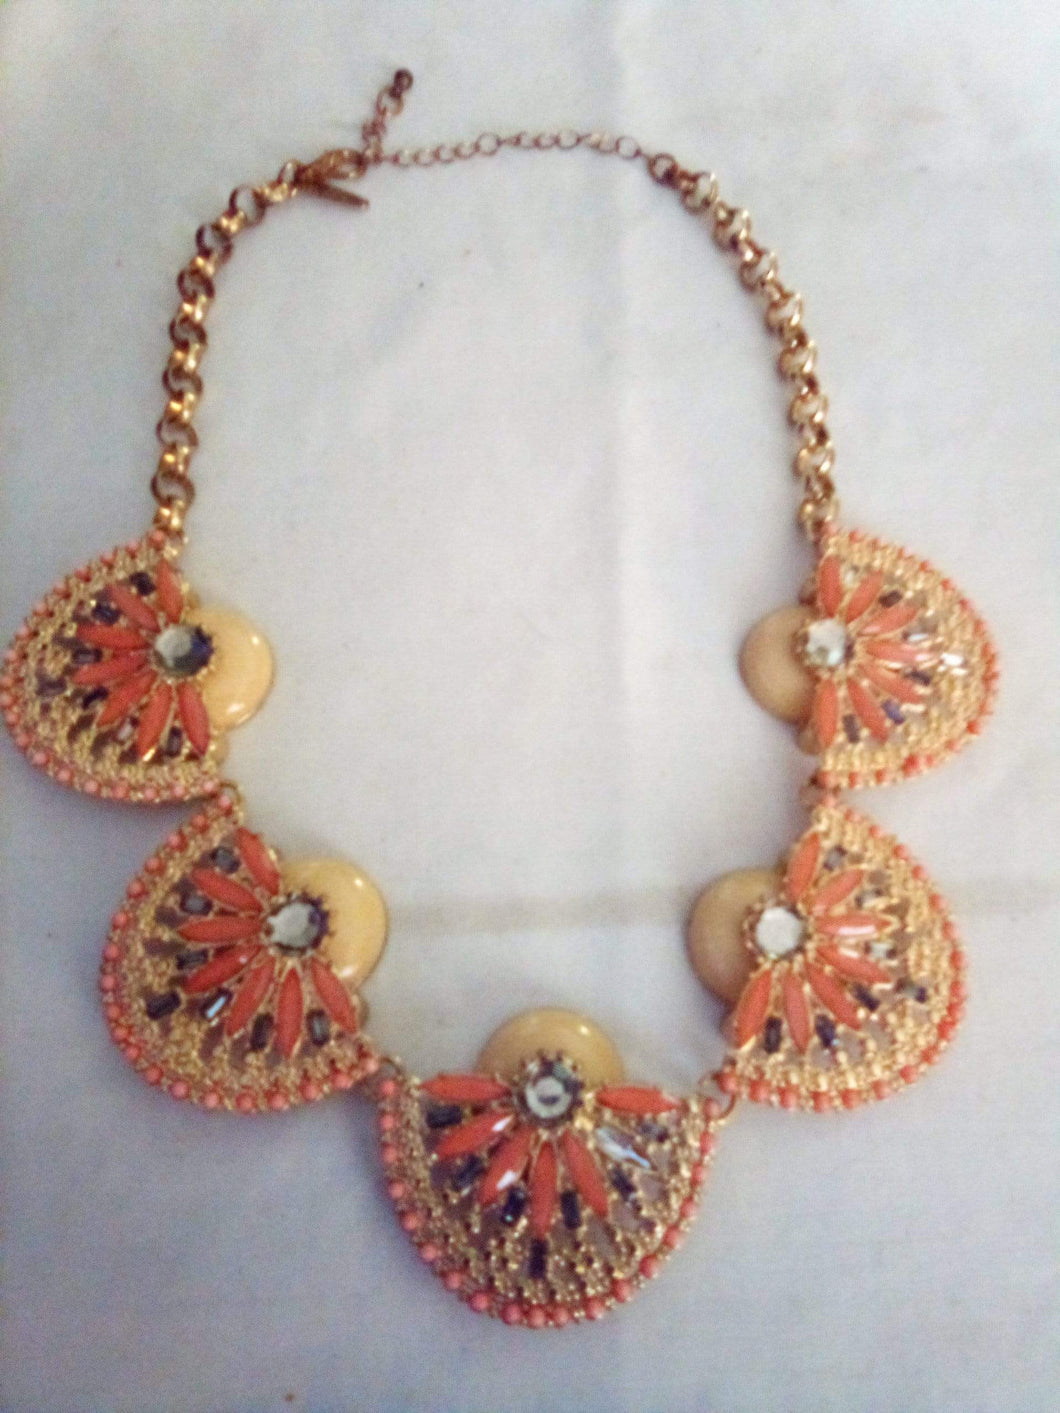 Vintage bright and colorful necklace - B&P'sringsnthings